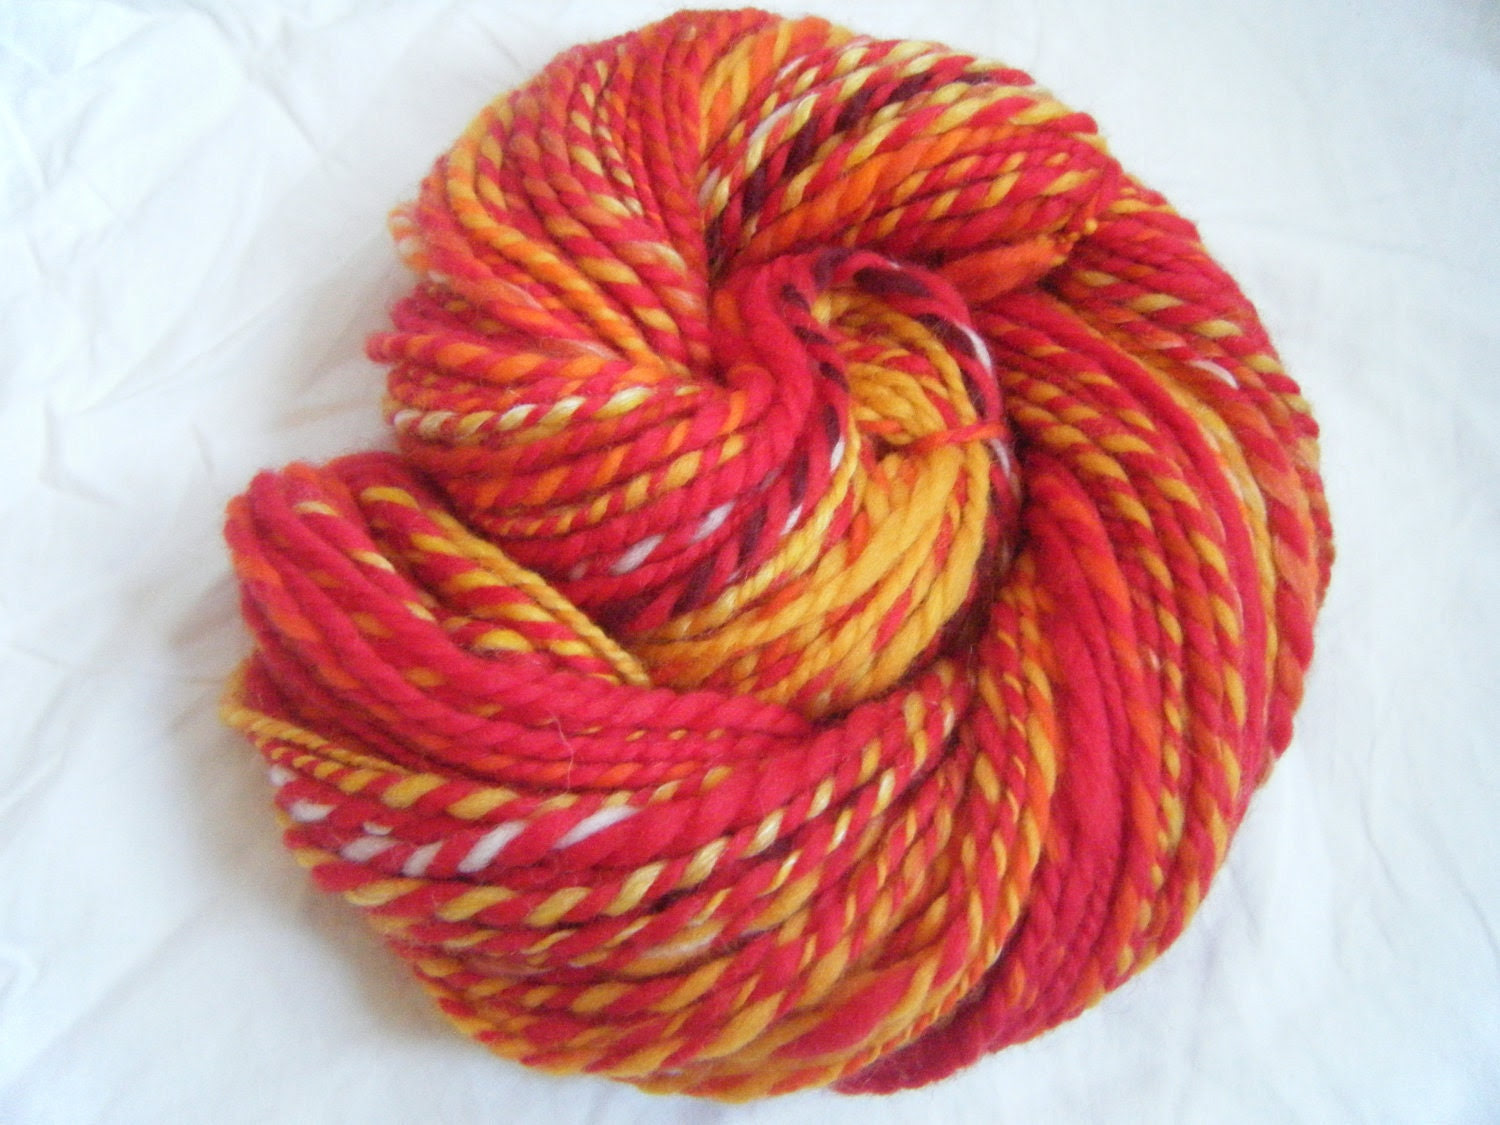 Orange and red, handspun 2-ply merino yarn, 95 yards, 65g